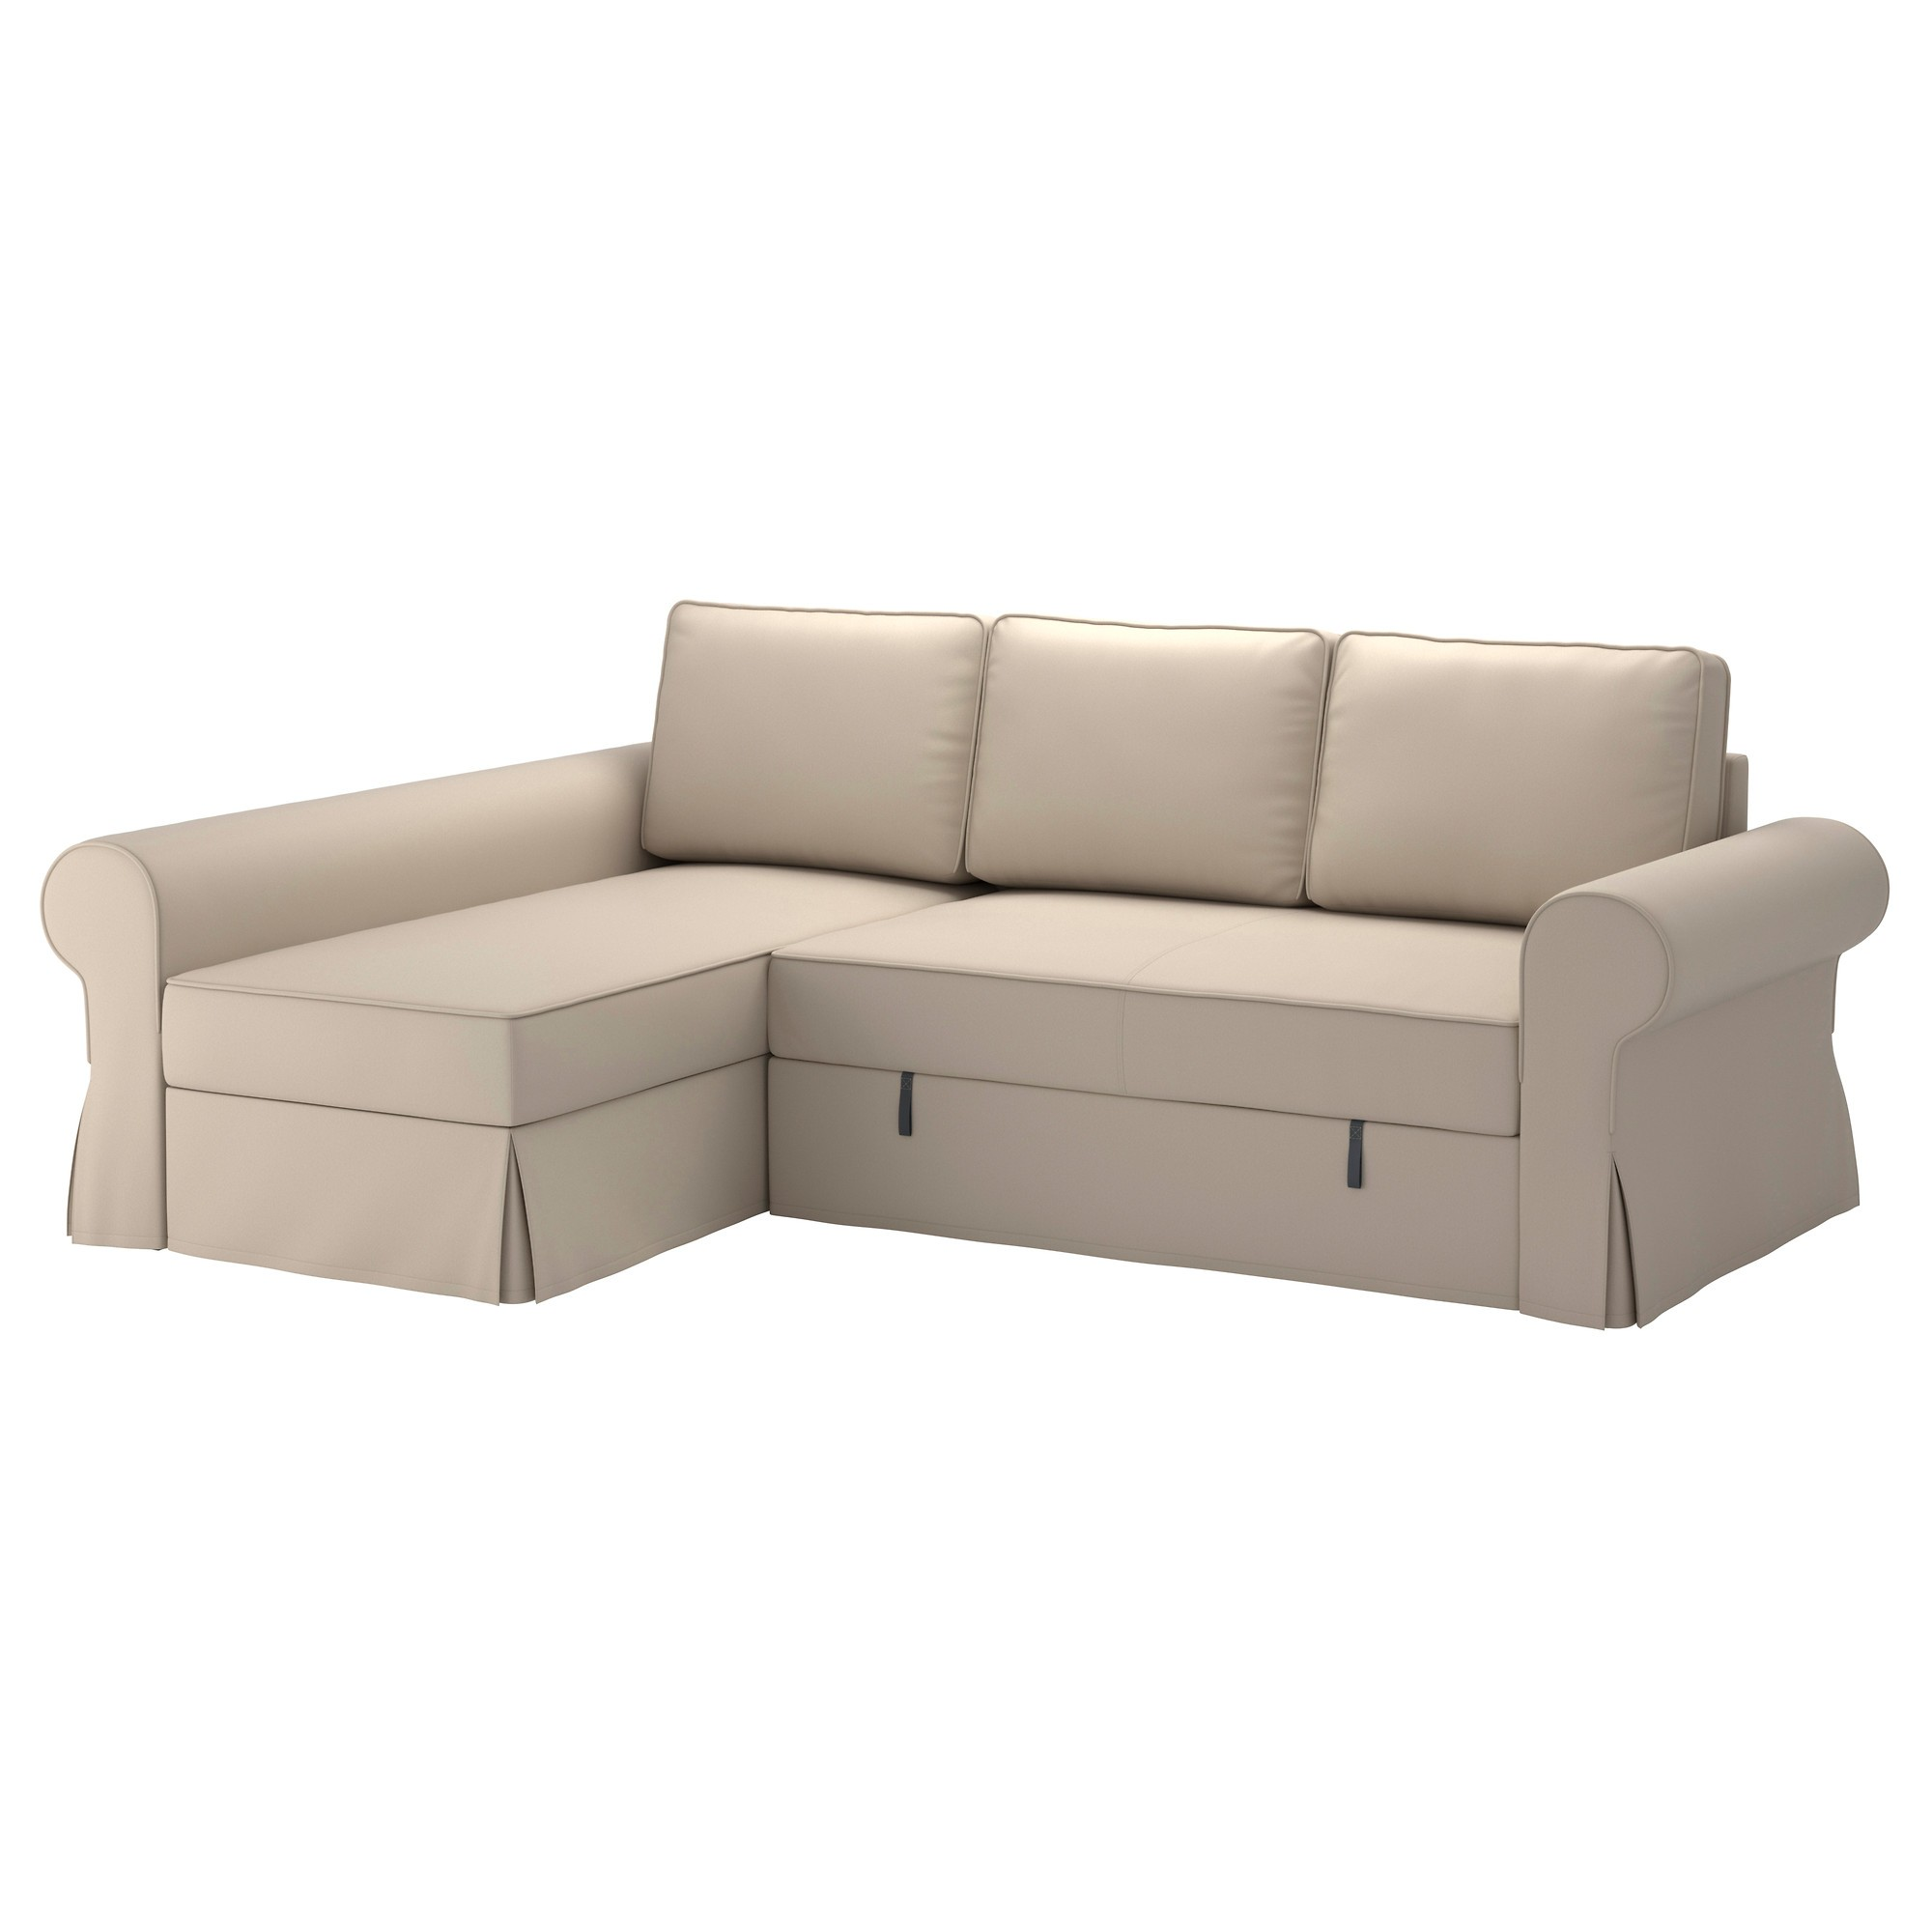 Sofa Bed with Chaise Fancy Backabro sofa Bed with Chaise Longue Ramna Beige Ikea Ideas